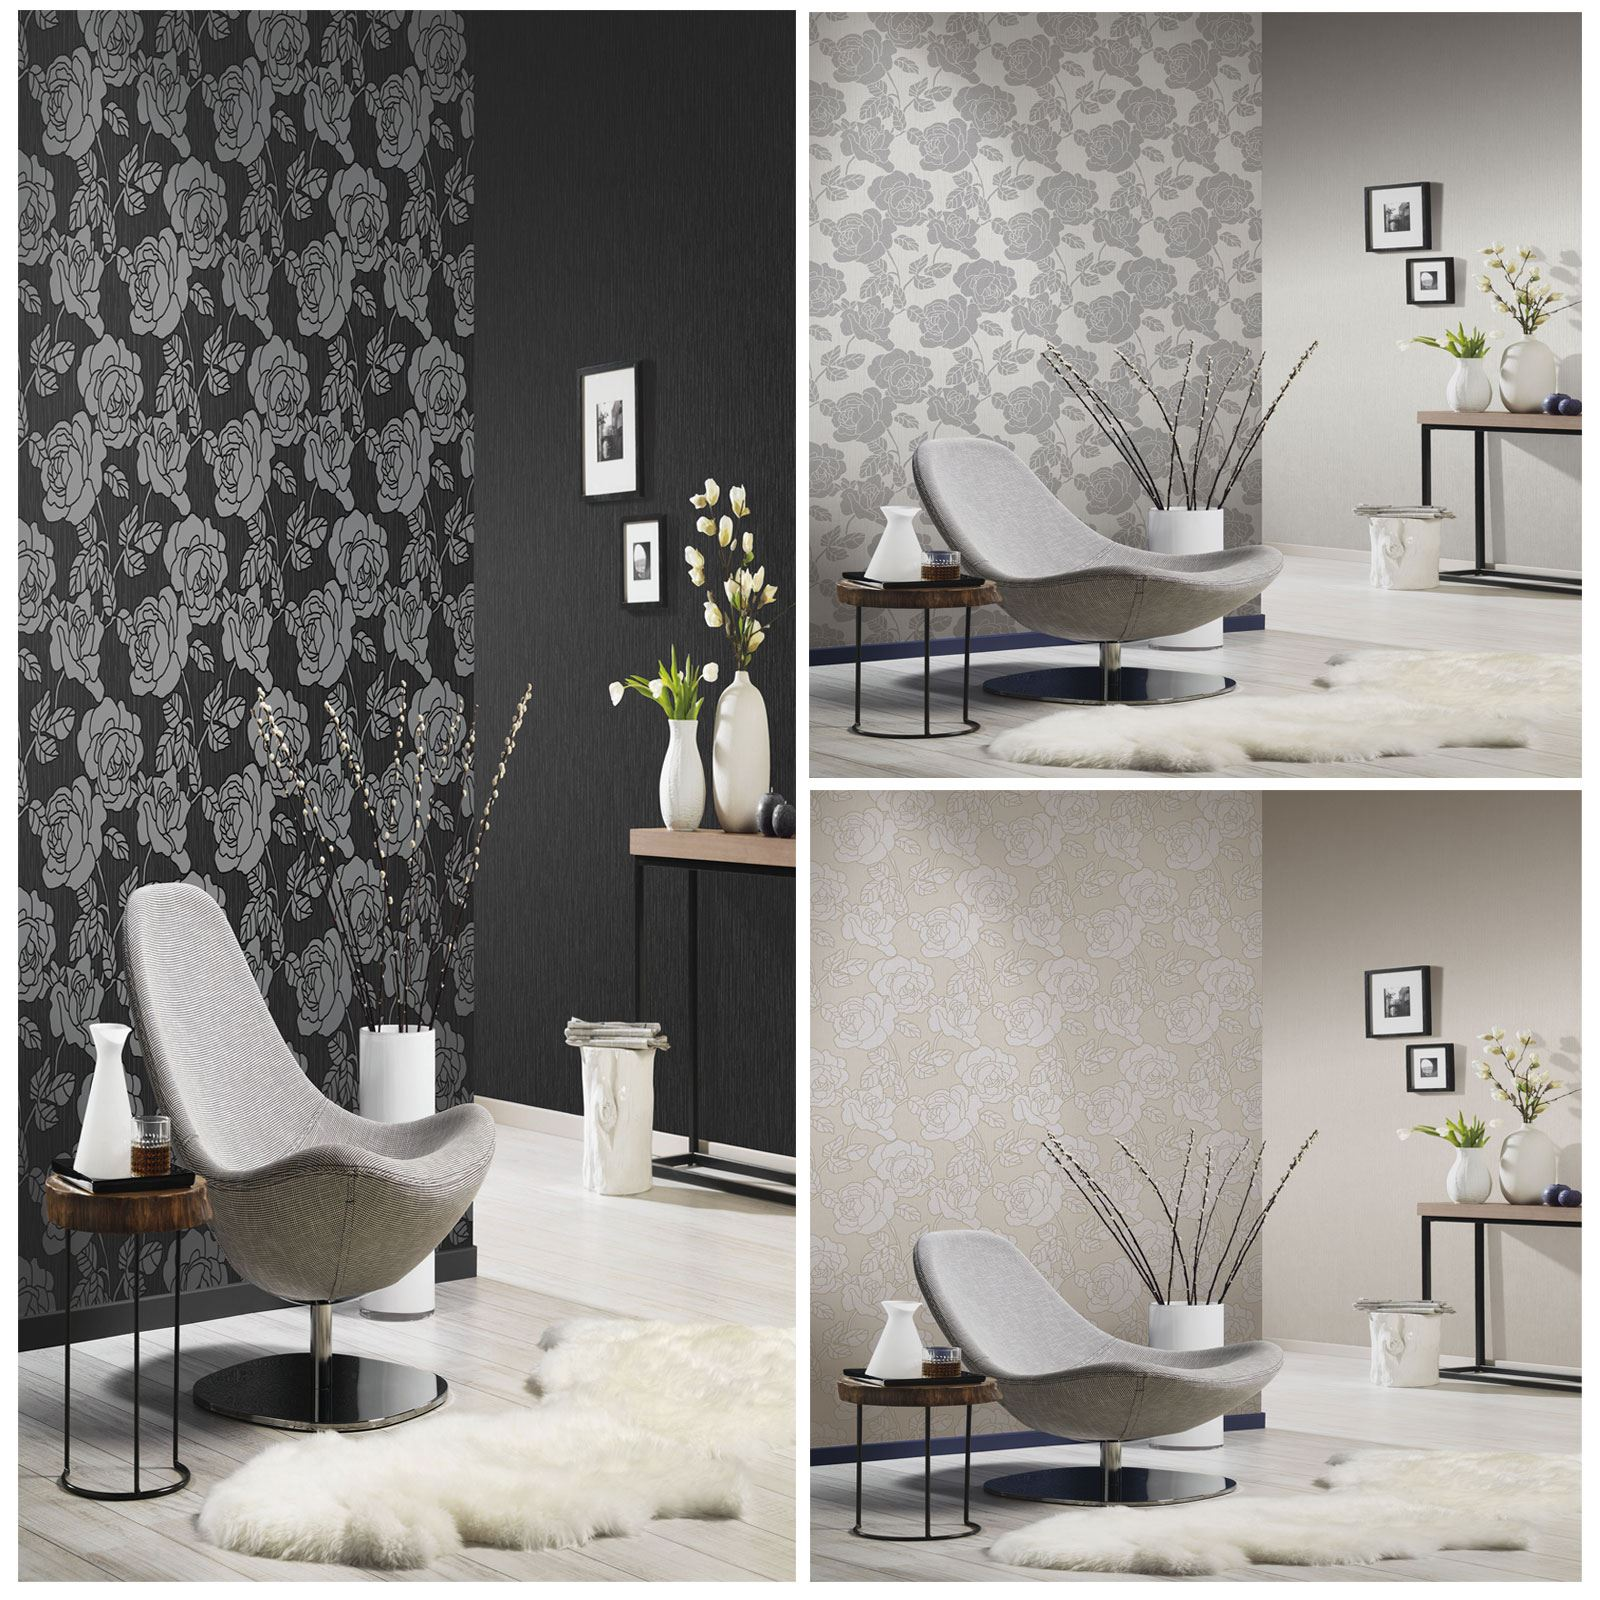 P+S OPAL FLORAL WALLPAPER WITH GLITTER HIGHLIGHTS BLACK GREY CREAM FEATURE  WALL Part 84